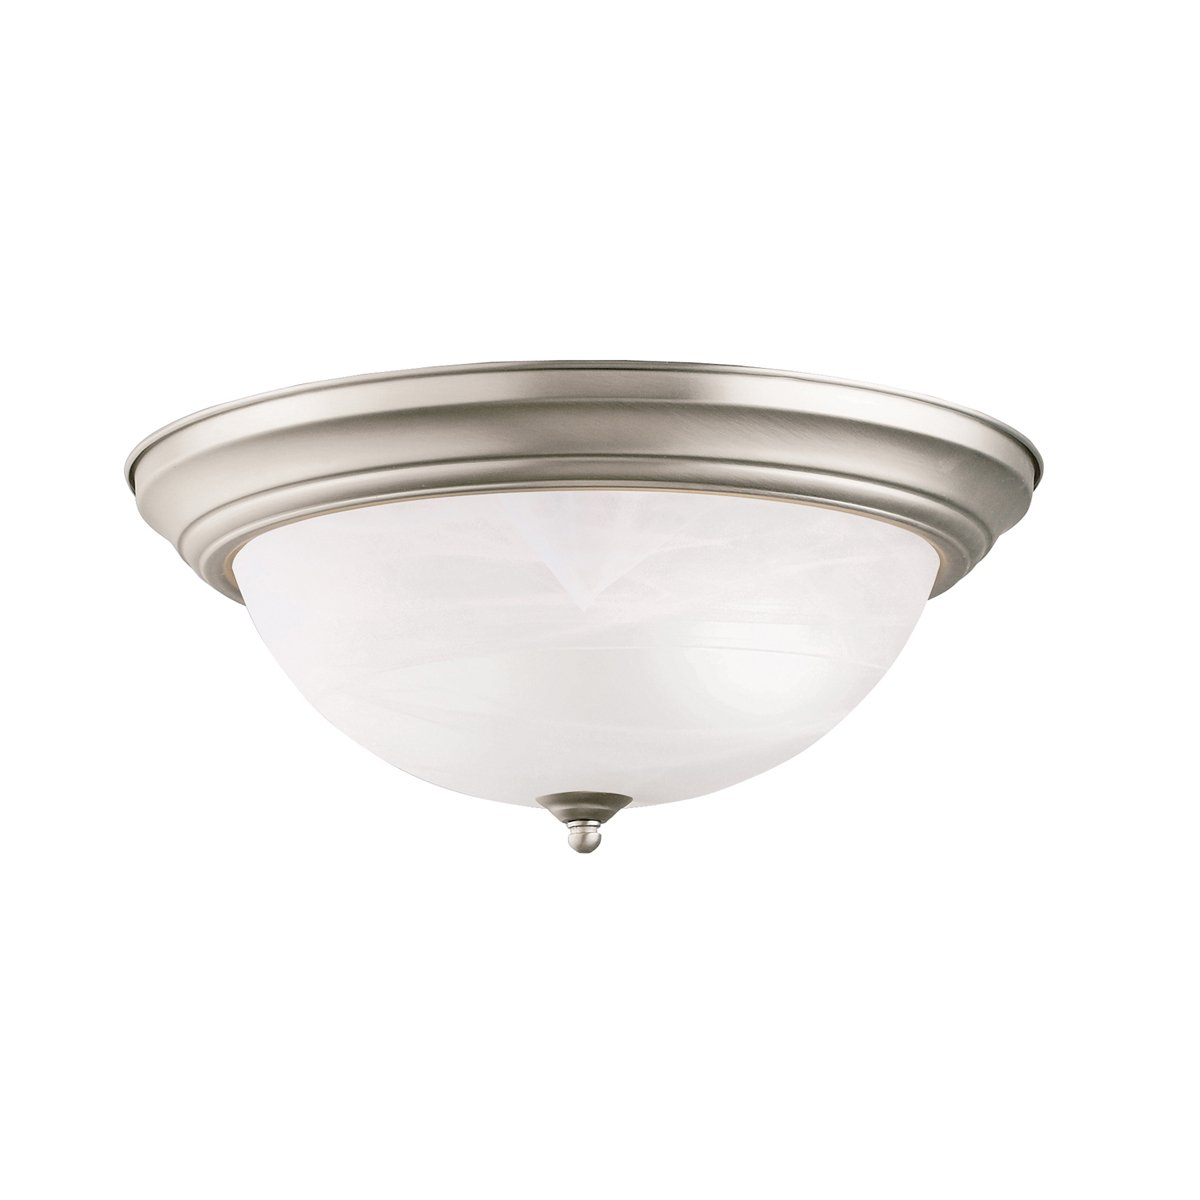 Kichler 8110NI Flush Mount, 3 Light Incandescent 180 Total Watts, Brushed Nickel